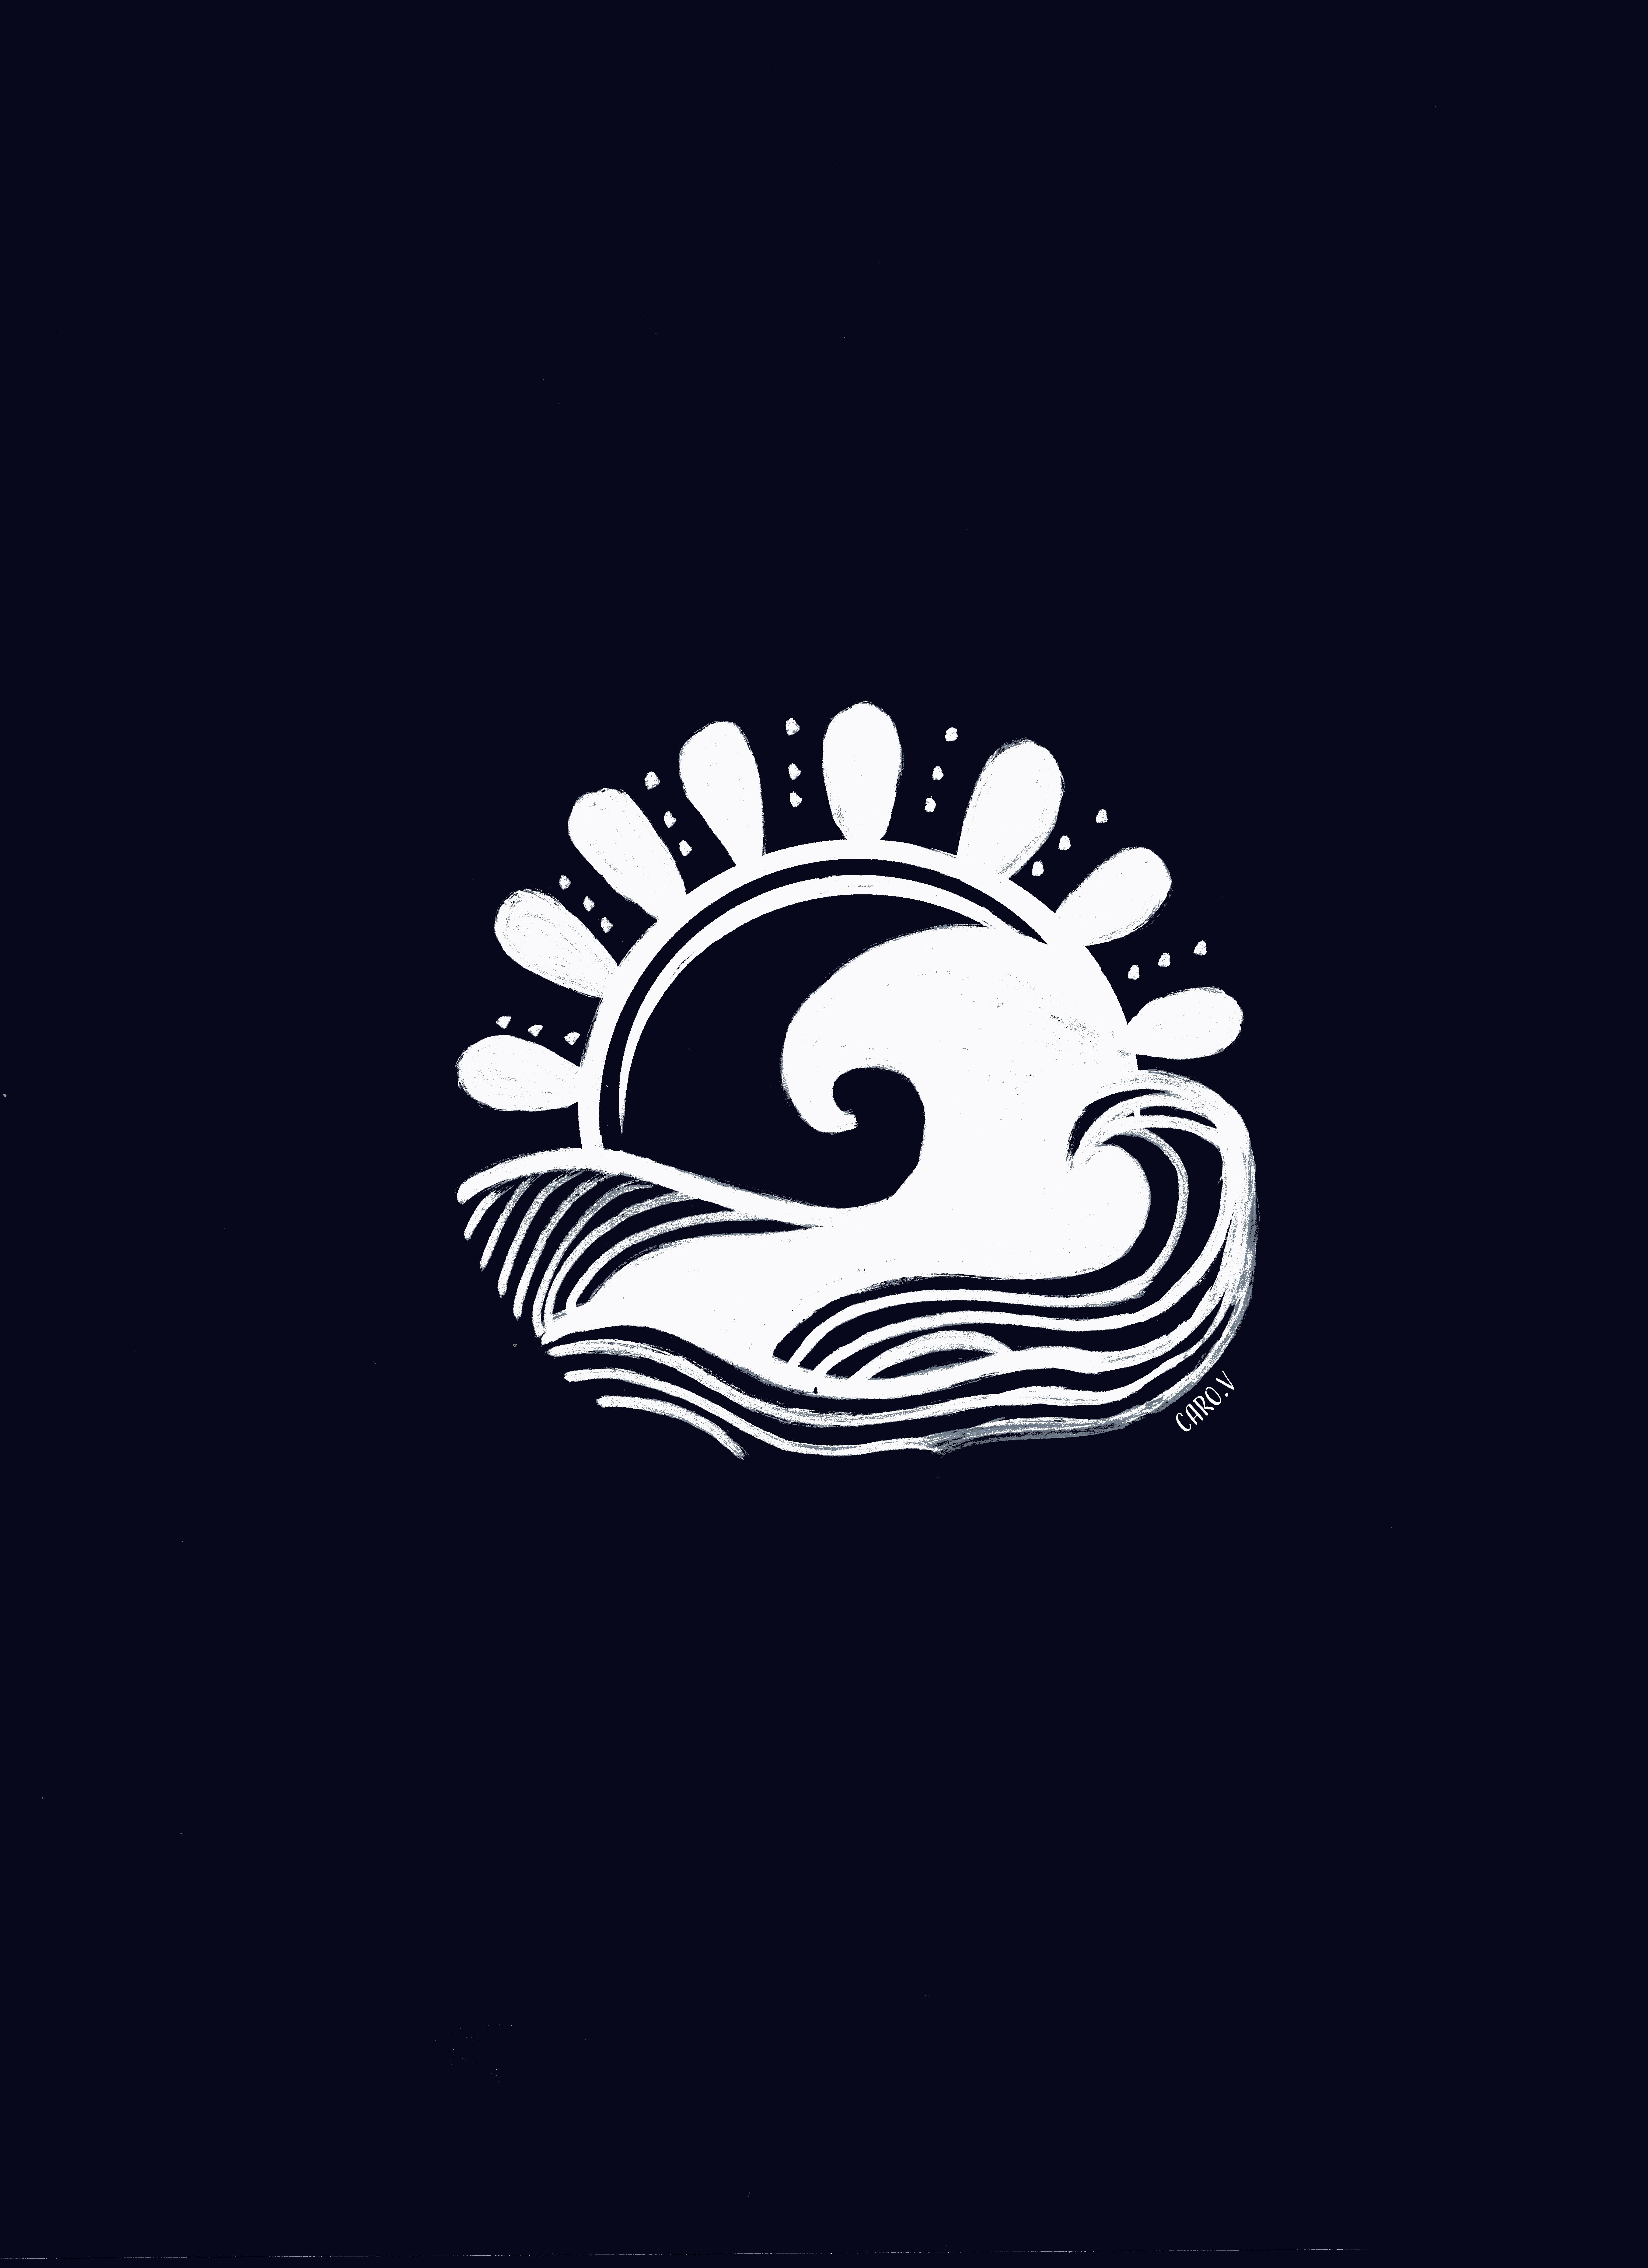 Drawing of a white sun and a wave on a navy blue background